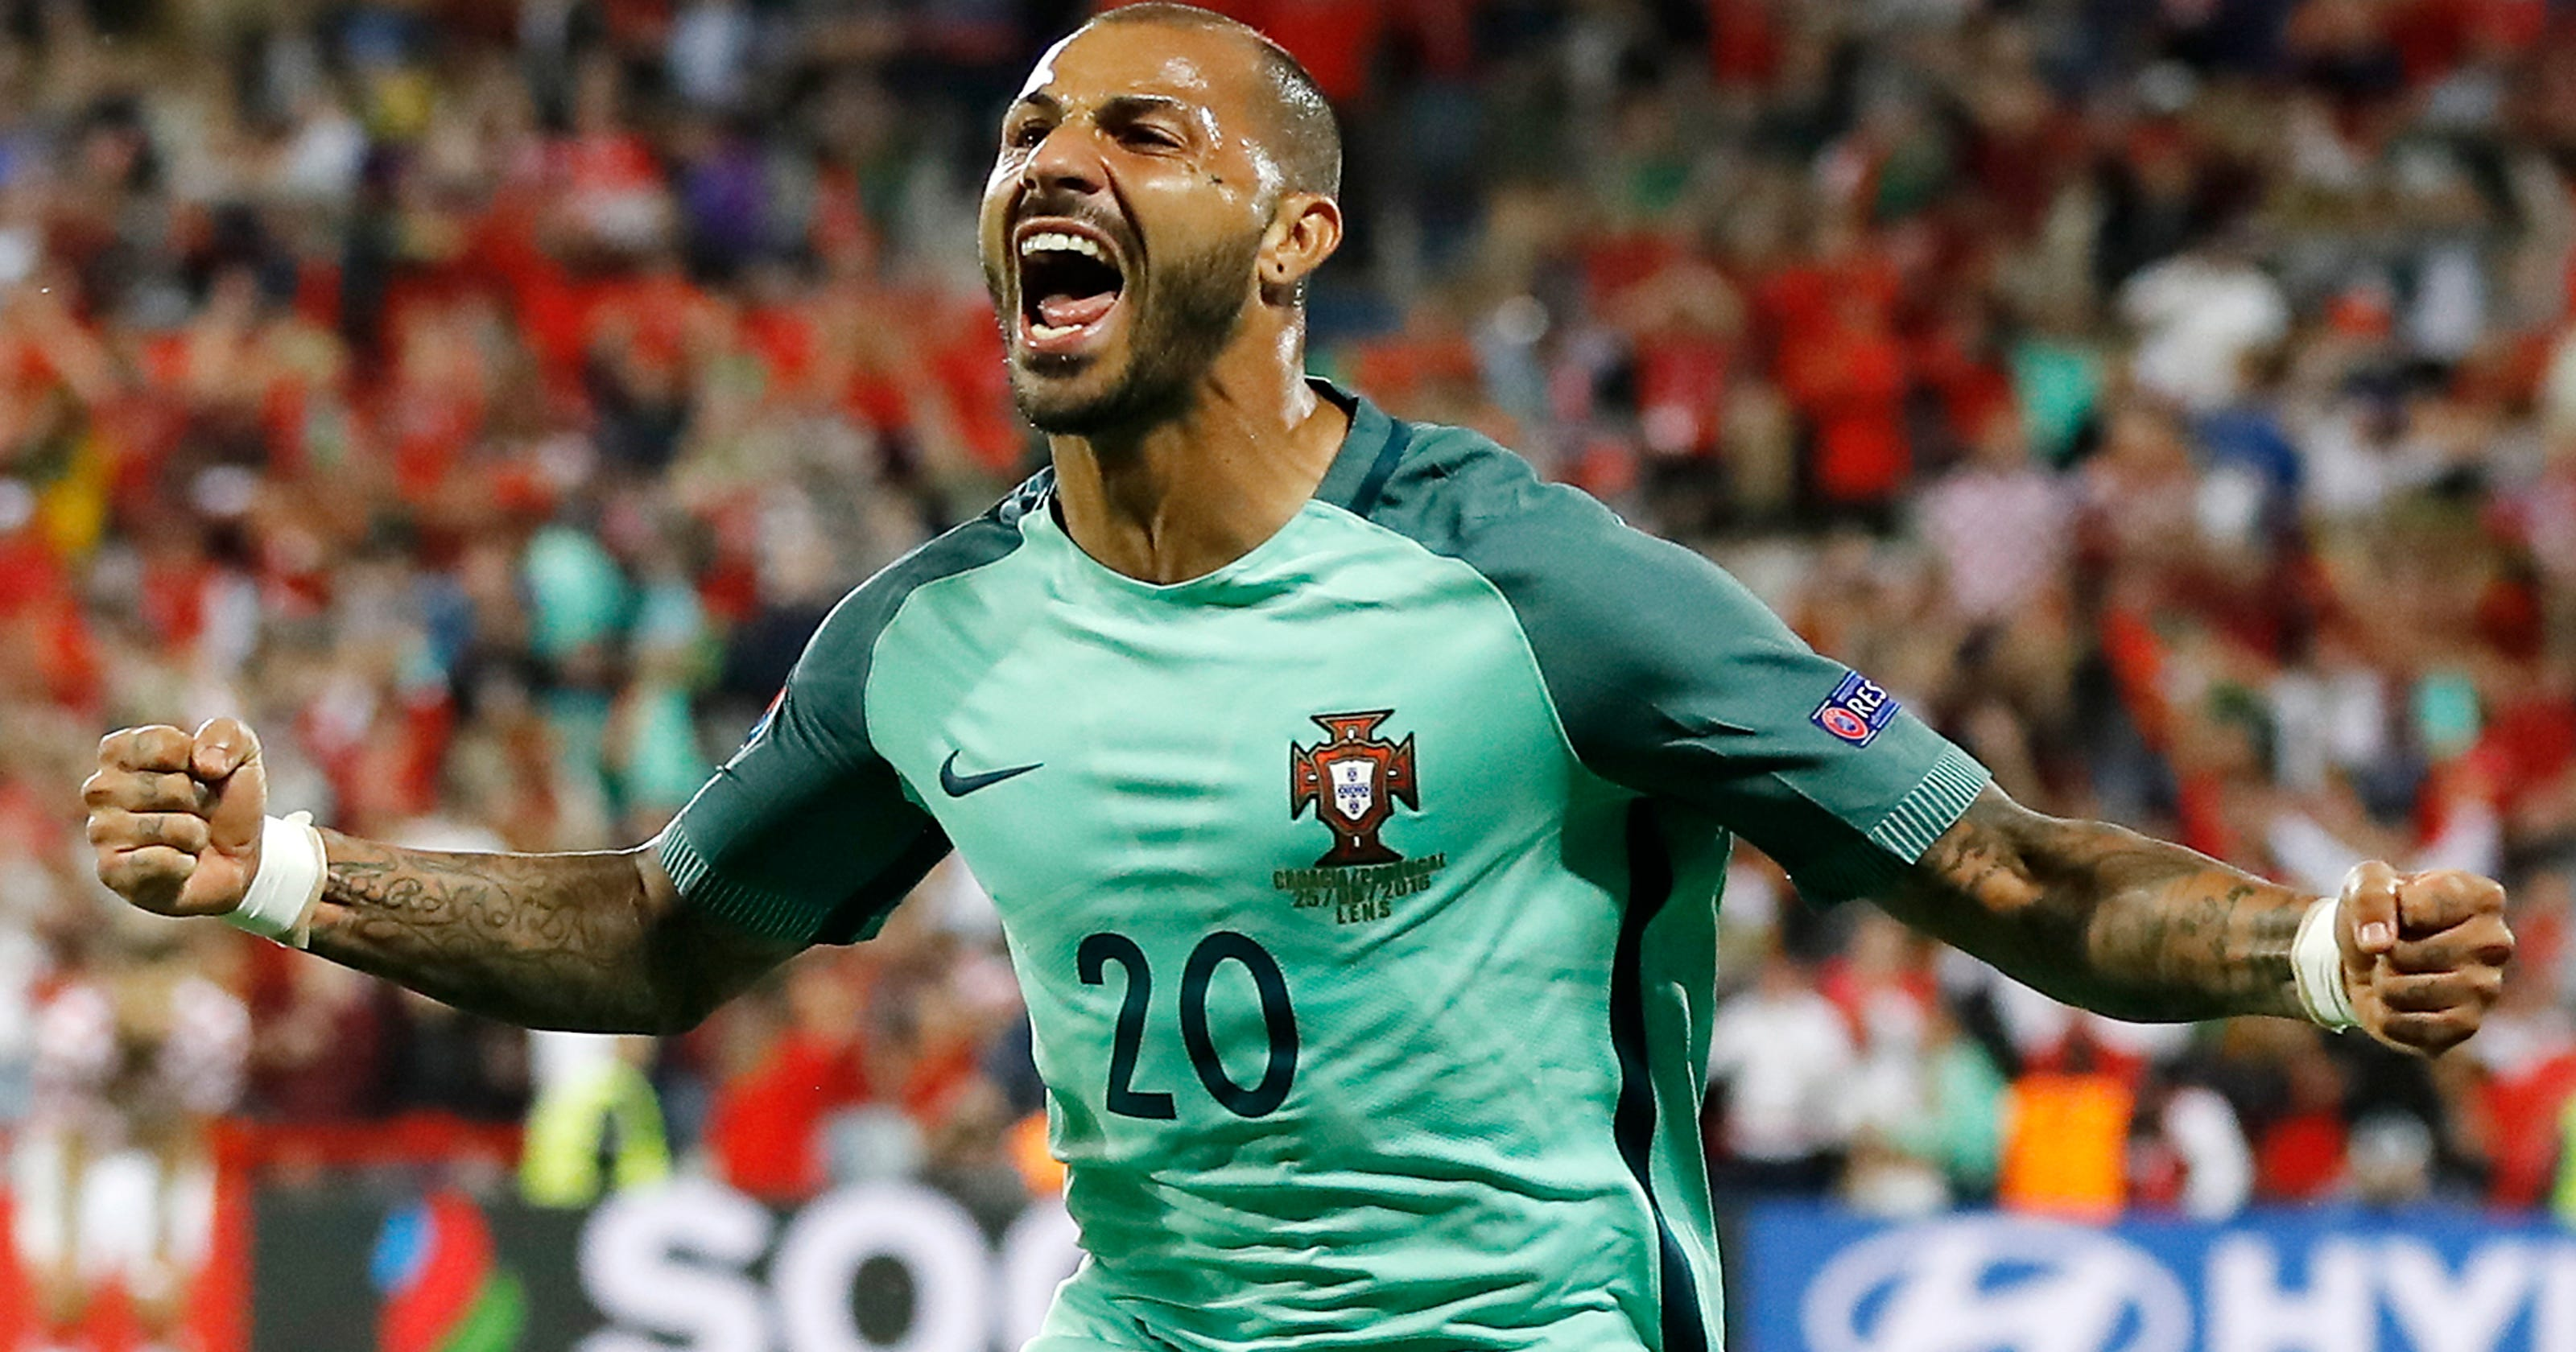 64a9a0e2b88 Portugal beats Croatia with late goal at European Championship